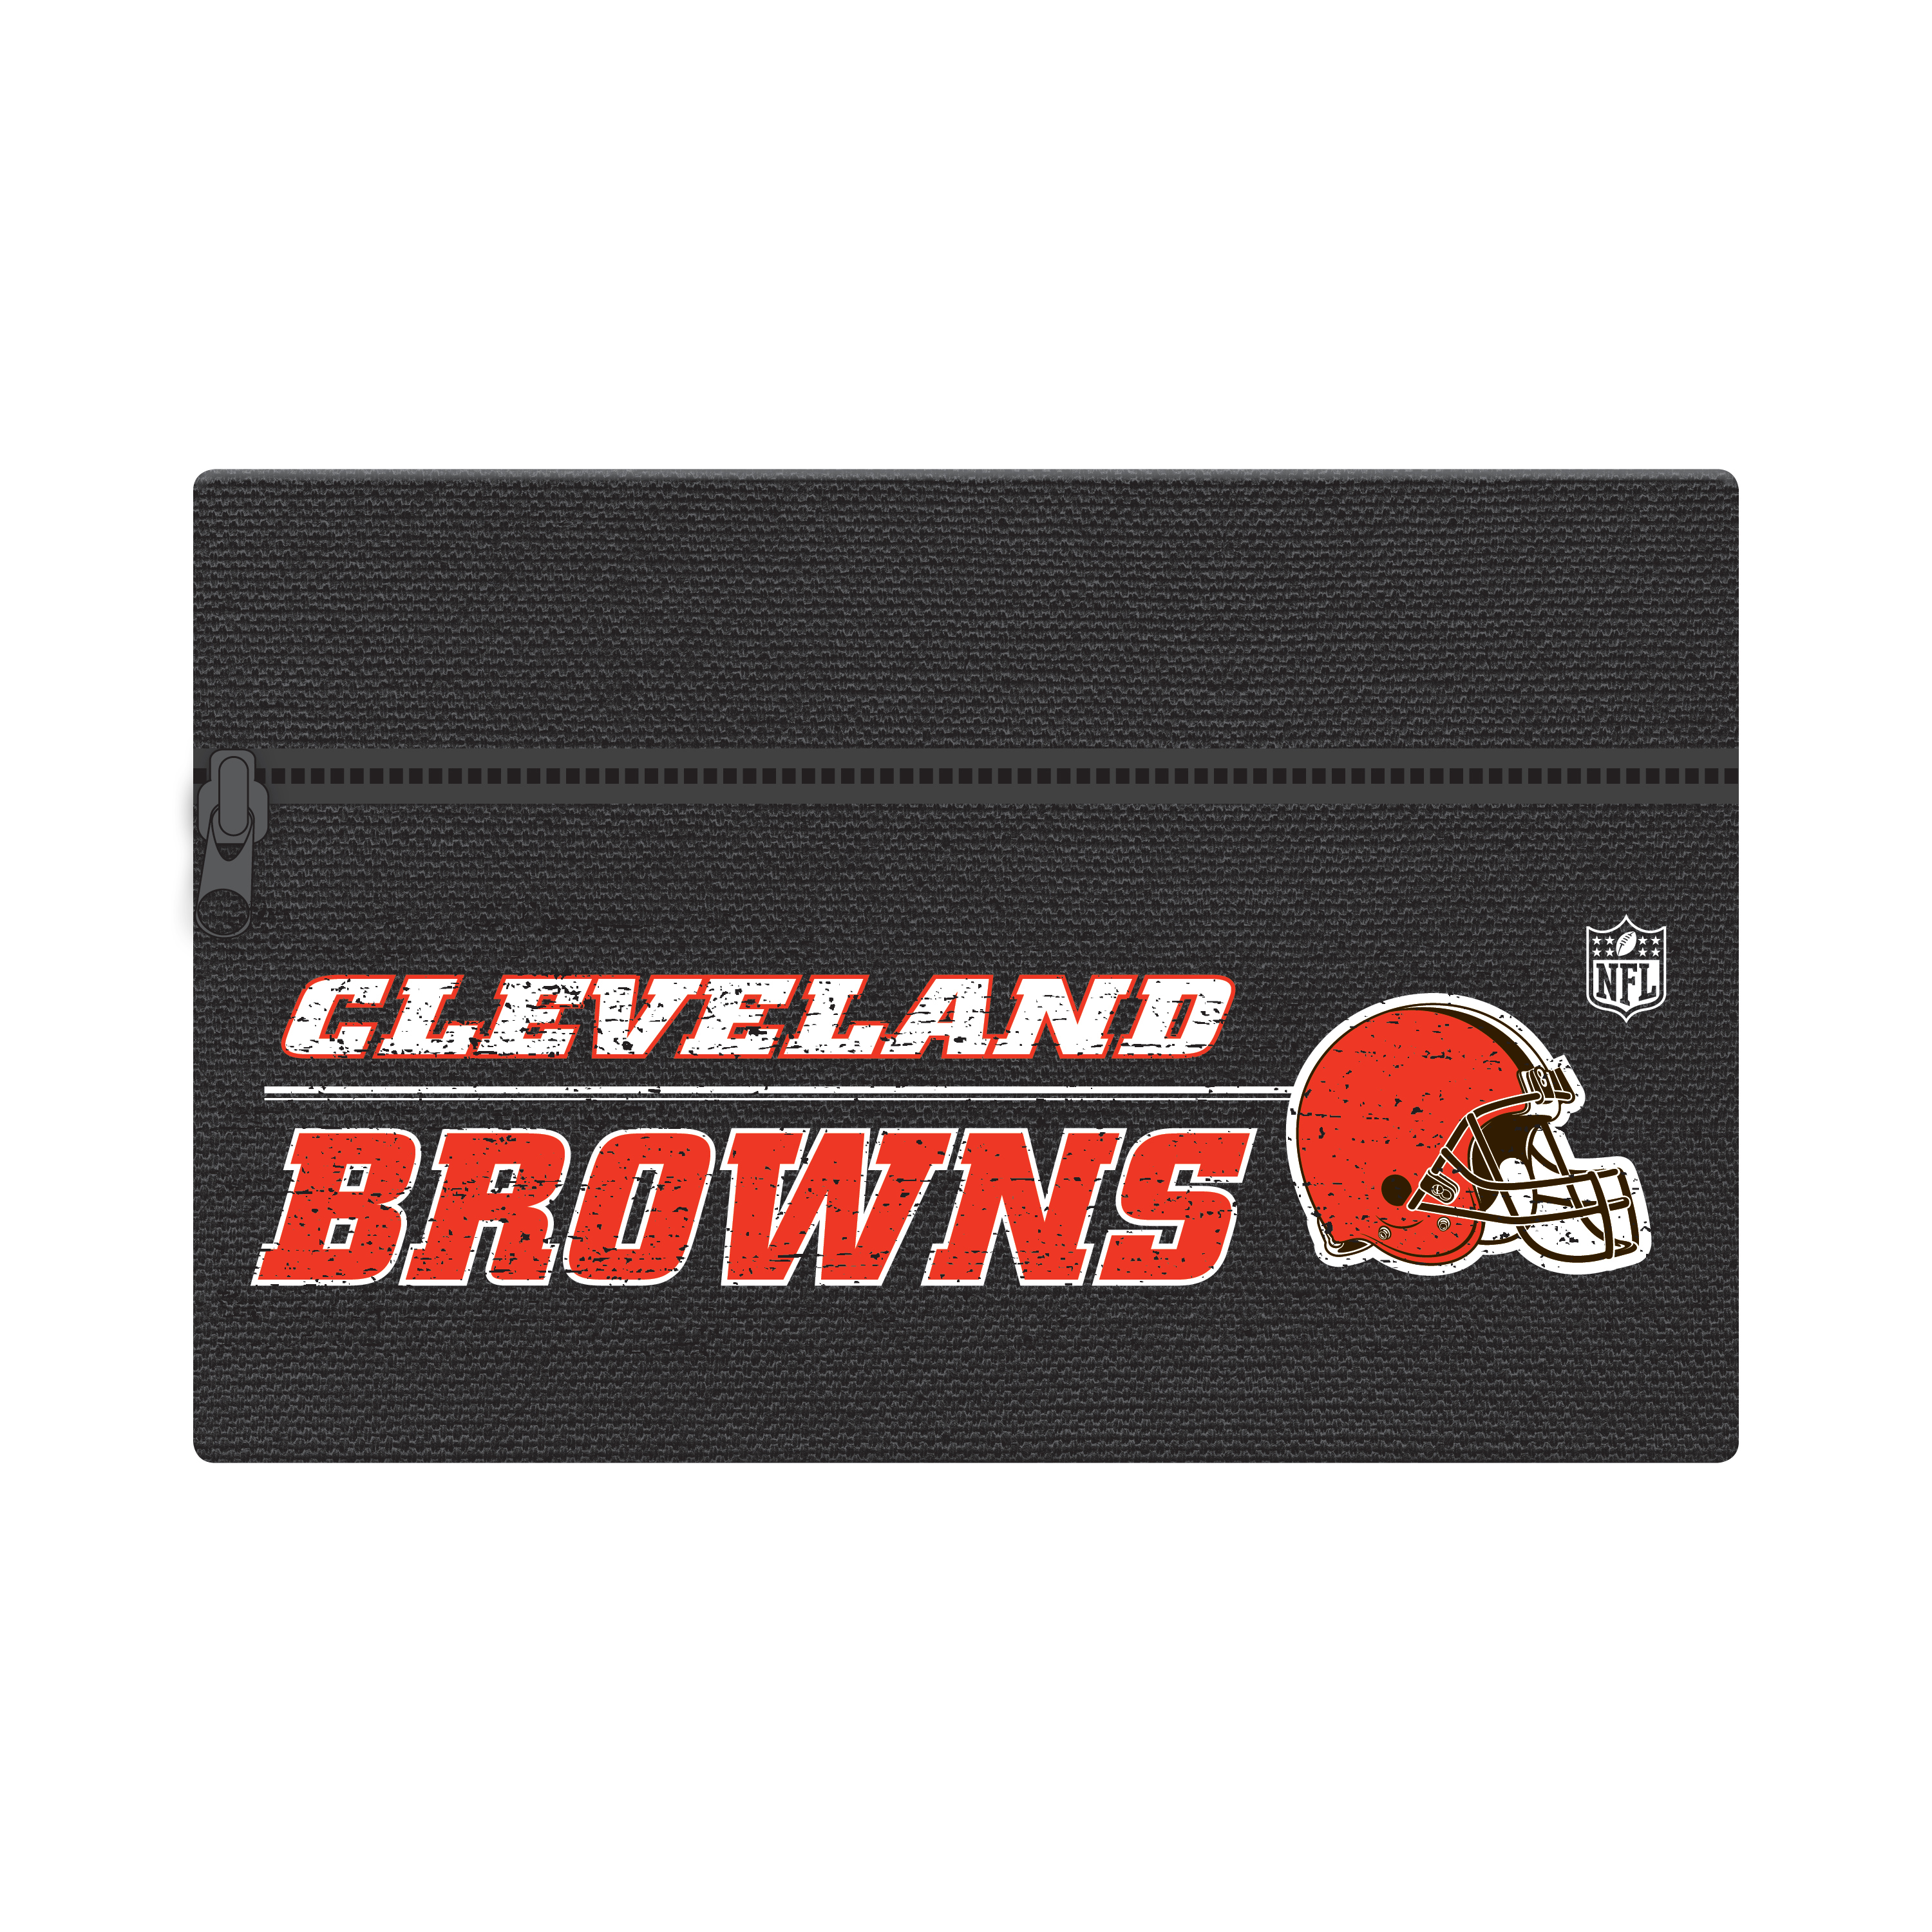 "NFL Cleveland Browns Zippered Cotton Canvas Pencil Pouch, 7.5"" by 4.625"""